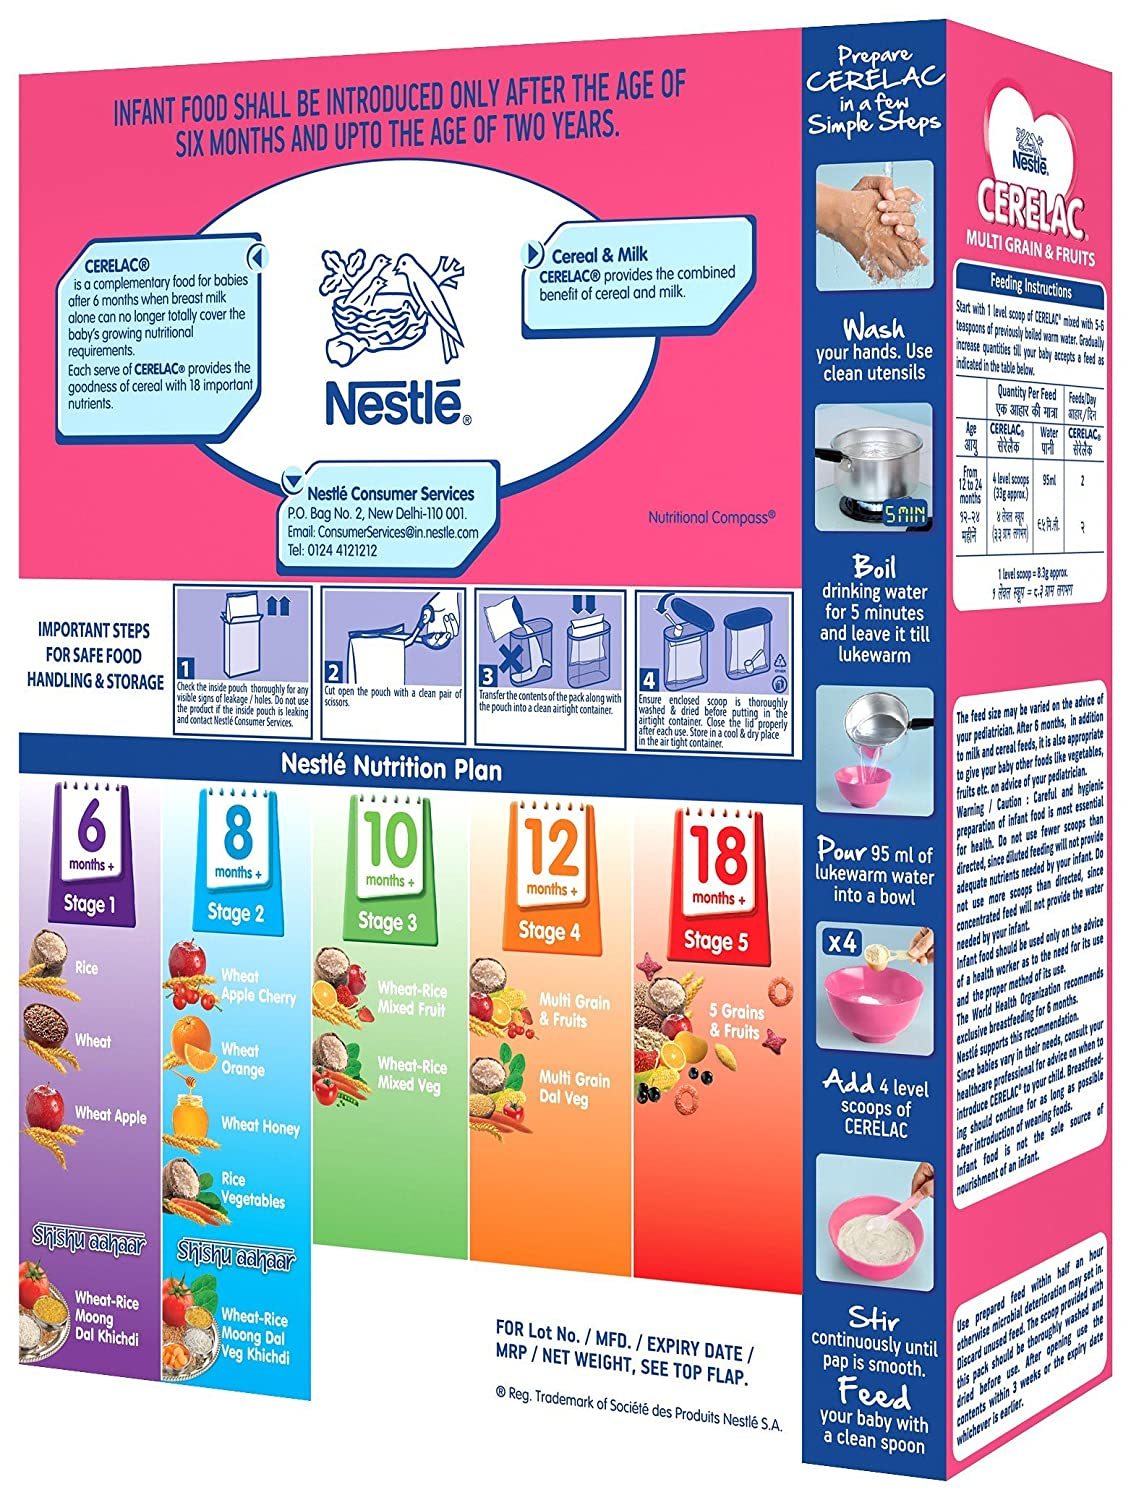 nutrition and nestle Good food, good life as the world's largest food company, we are committed to promoting nutrition, health and wellness through the products we make by providing consumers with information to help them make healthier choices.